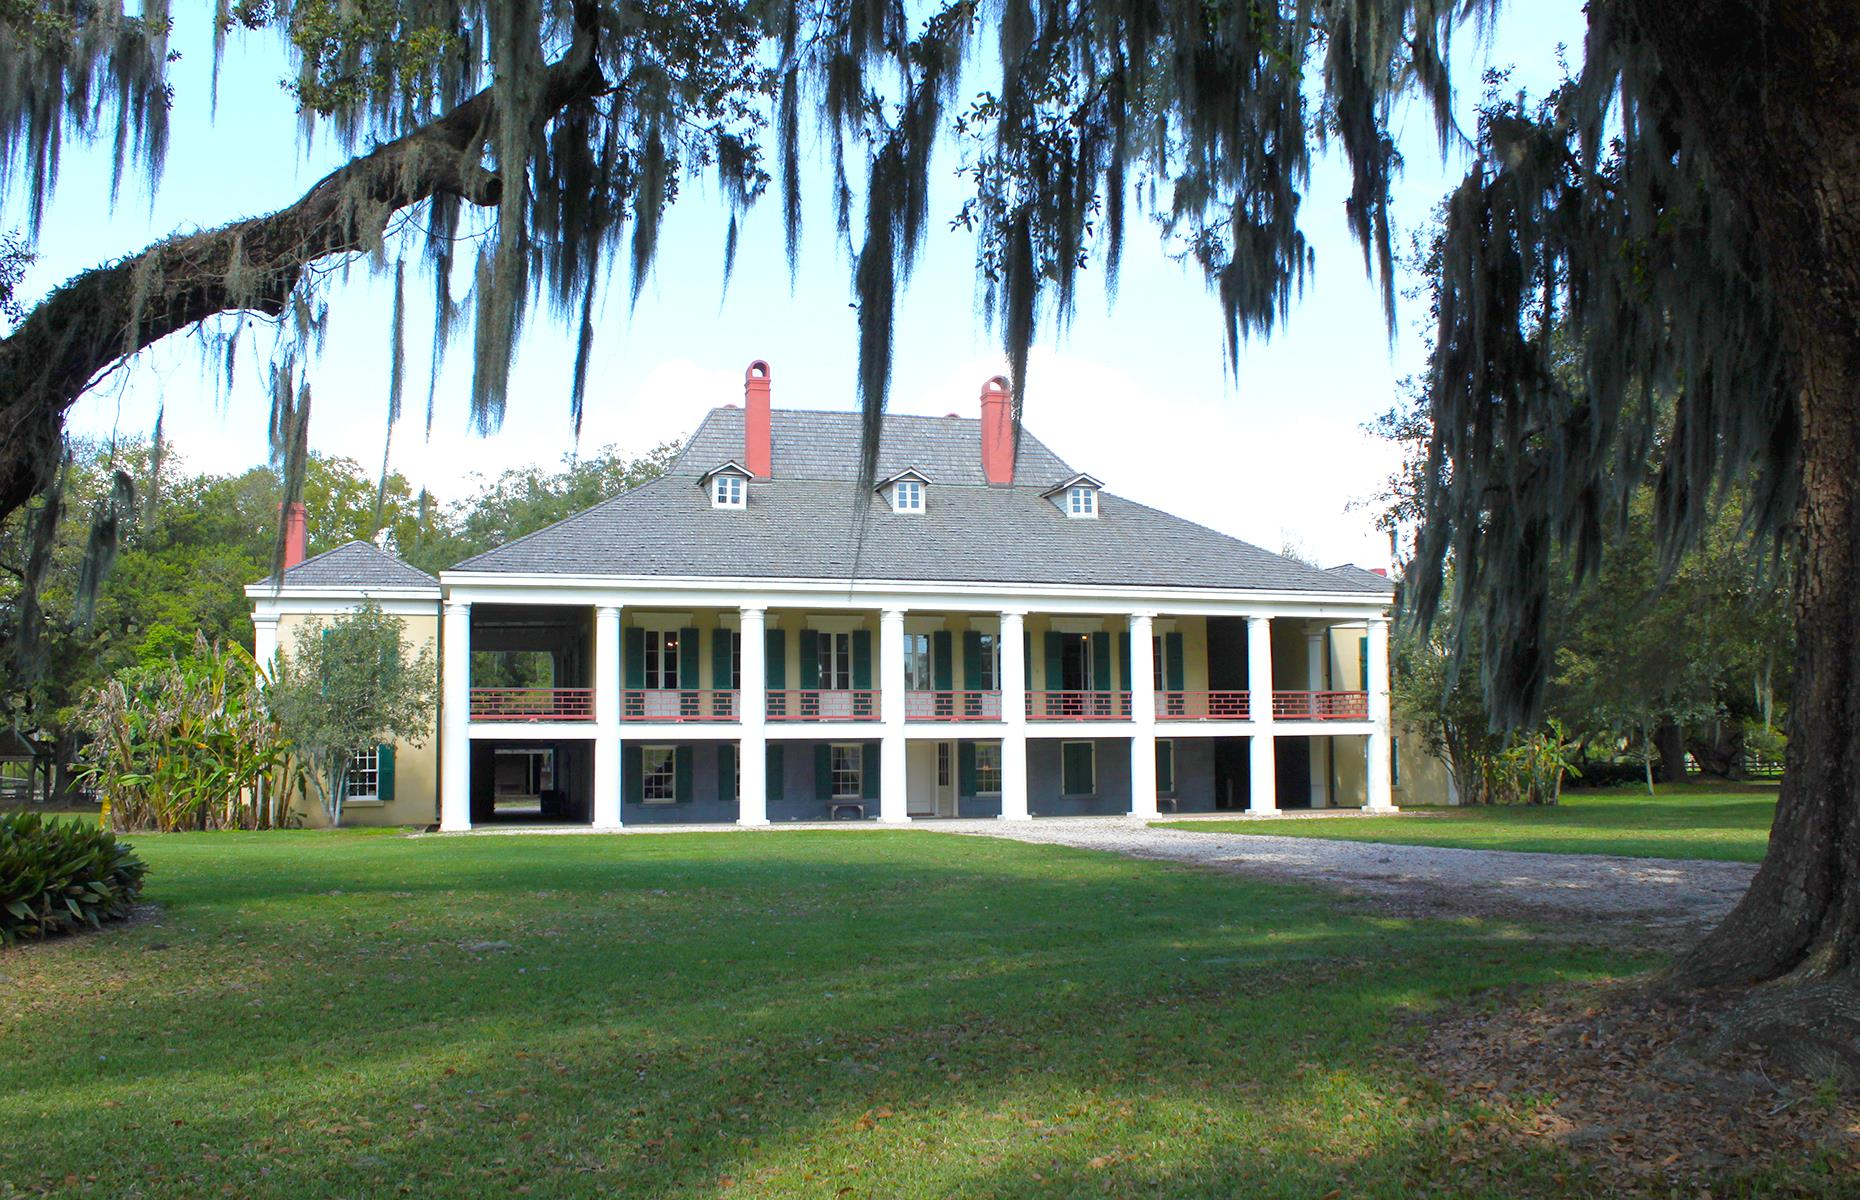 Slide 37 of 101: After the sights and sounds of the Big Easy, popular stops along this route include the Destrehan Plantation (pictured), thought to be the oldest plantation home in the Lower Mississippi Valley. Exhibits at this site include the quarters of the enslaved peoples who lived here, and guided tours typically run most days. Also en route is the poignant River Road African American Museum (you'll need to book a tour online or via email), before the road eventually spills into the city of Baton Rouge.